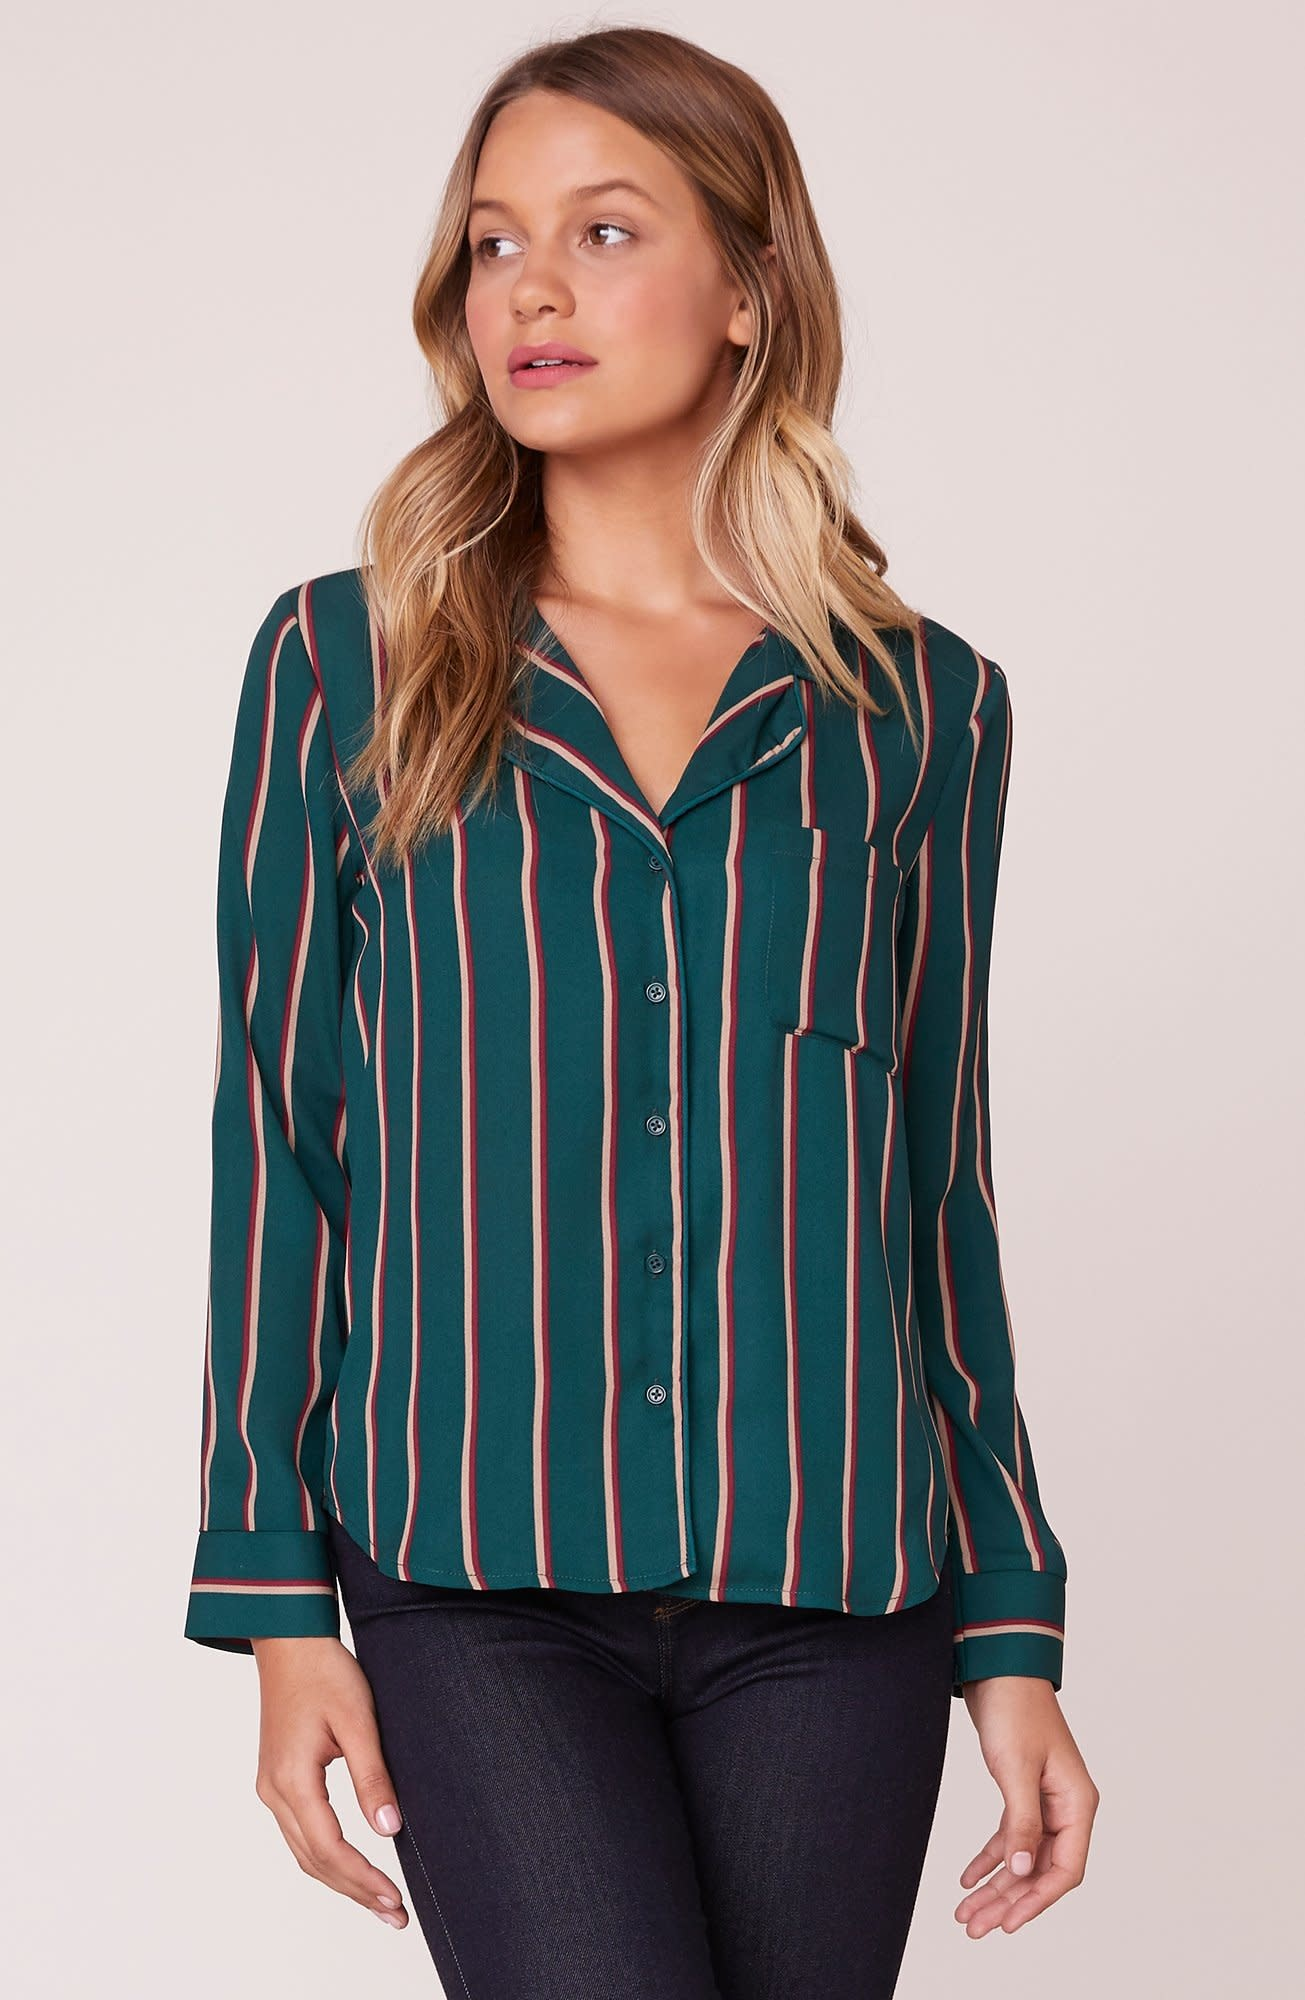 What's Your Line Printed Button Down